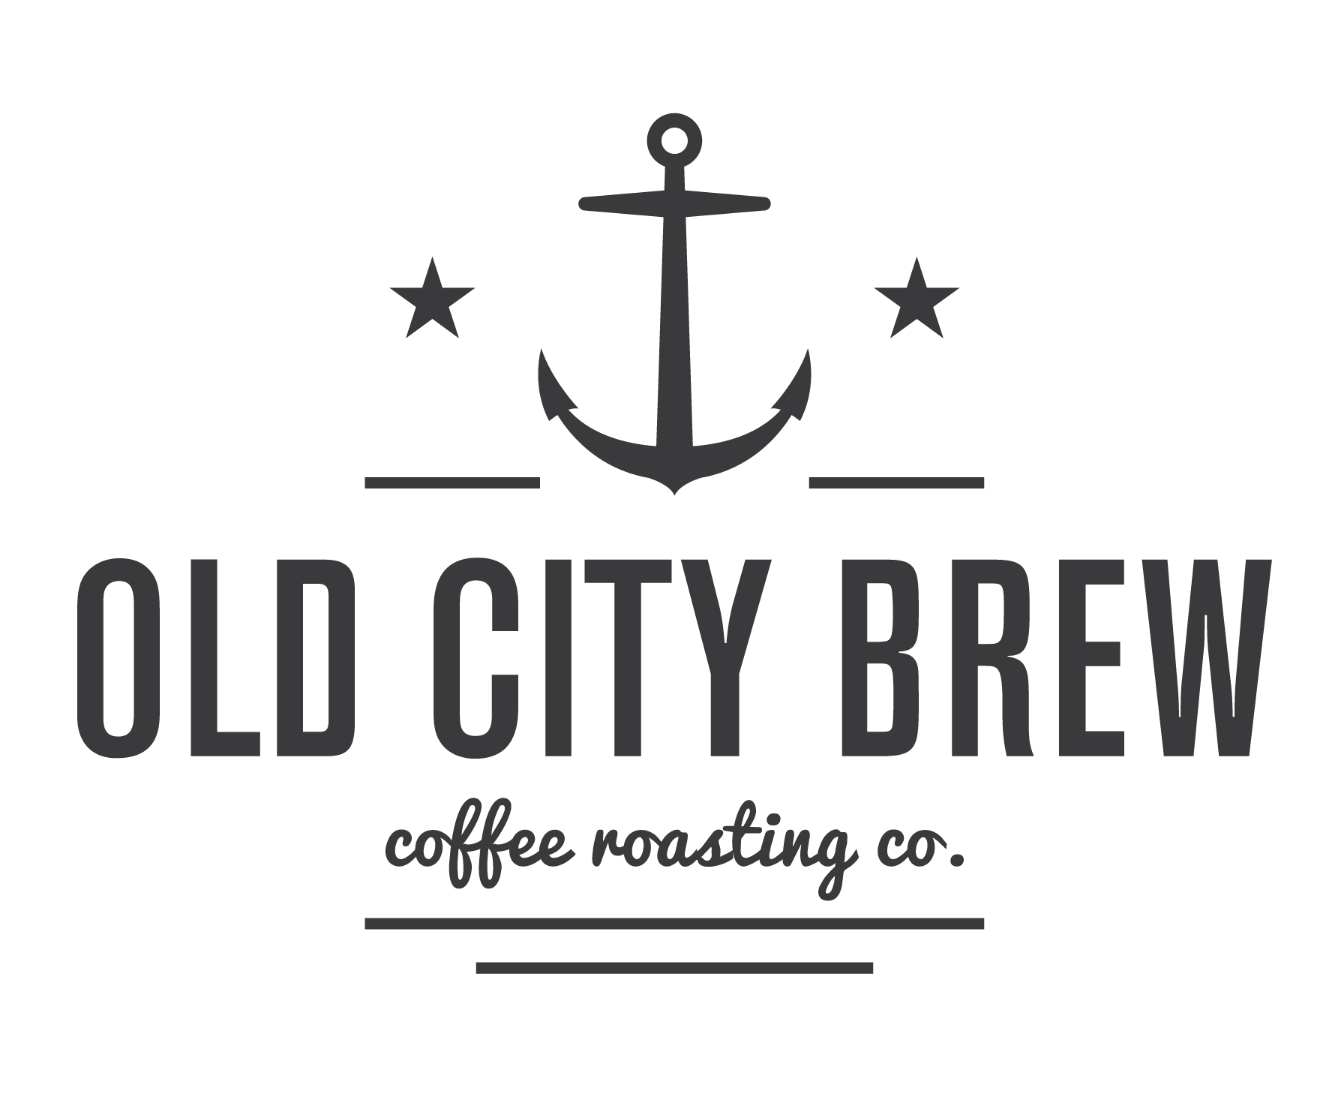 Old City Brew